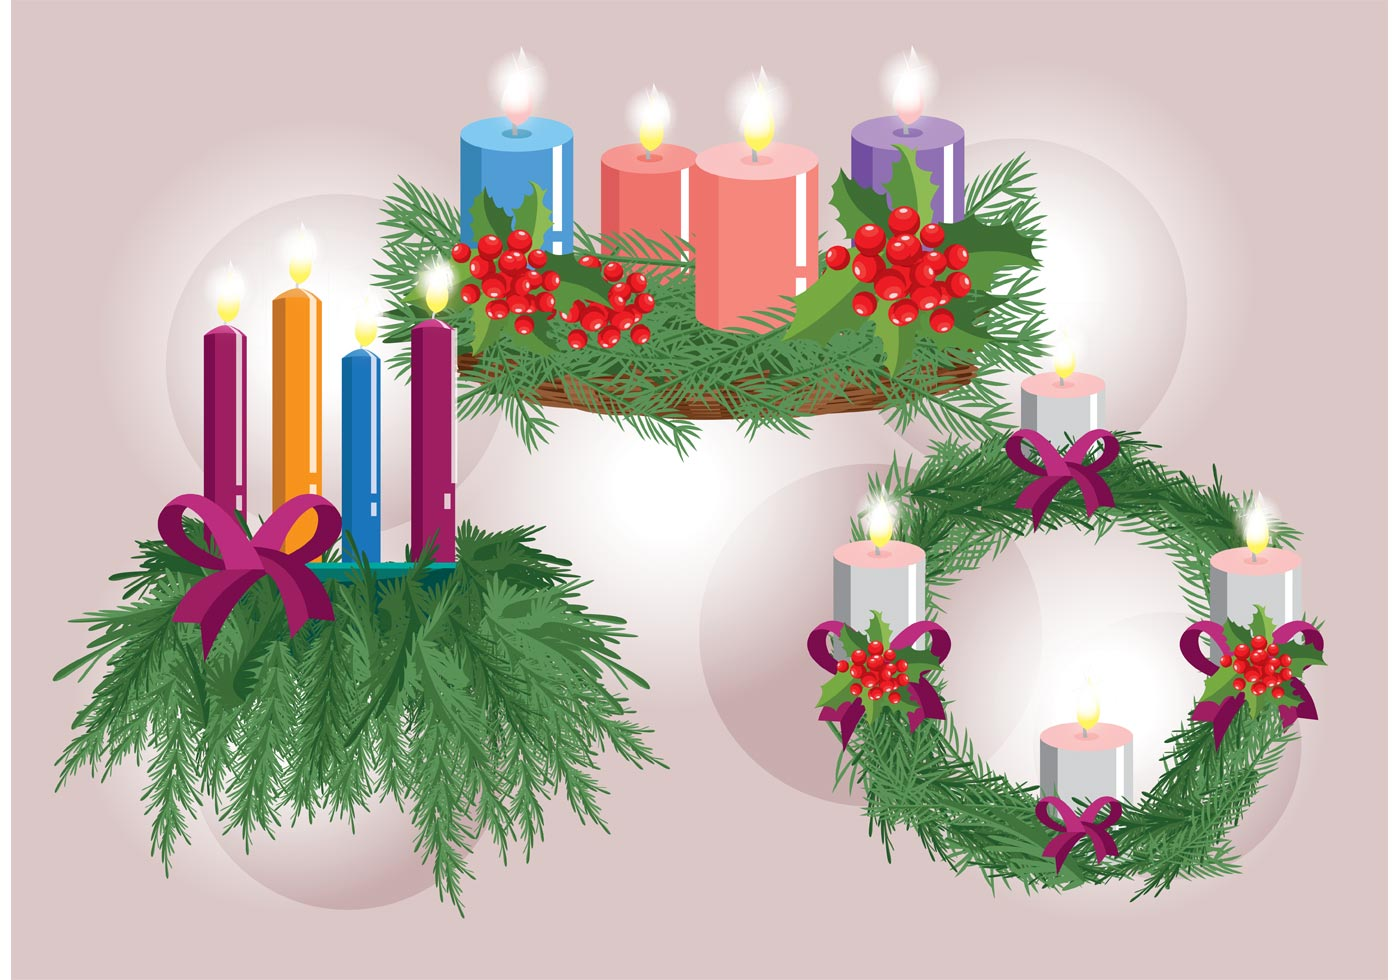 advent wreath vectors download free vectors clipart. Black Bedroom Furniture Sets. Home Design Ideas